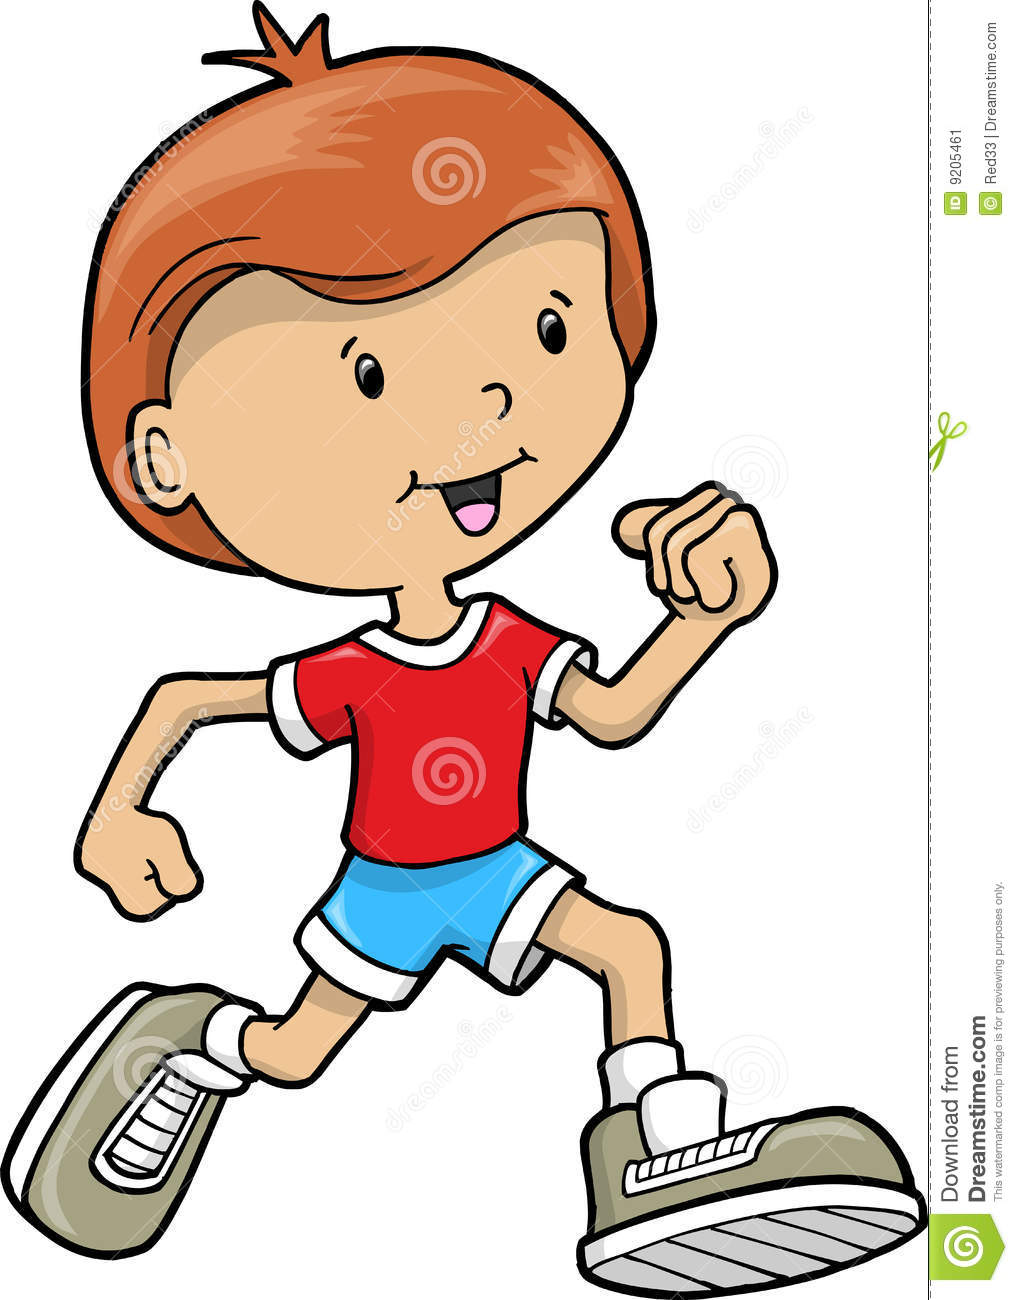 Running kid clipart jpg royalty free library Kids Jogging Clipart | Free download best Kids Jogging ... jpg royalty free library